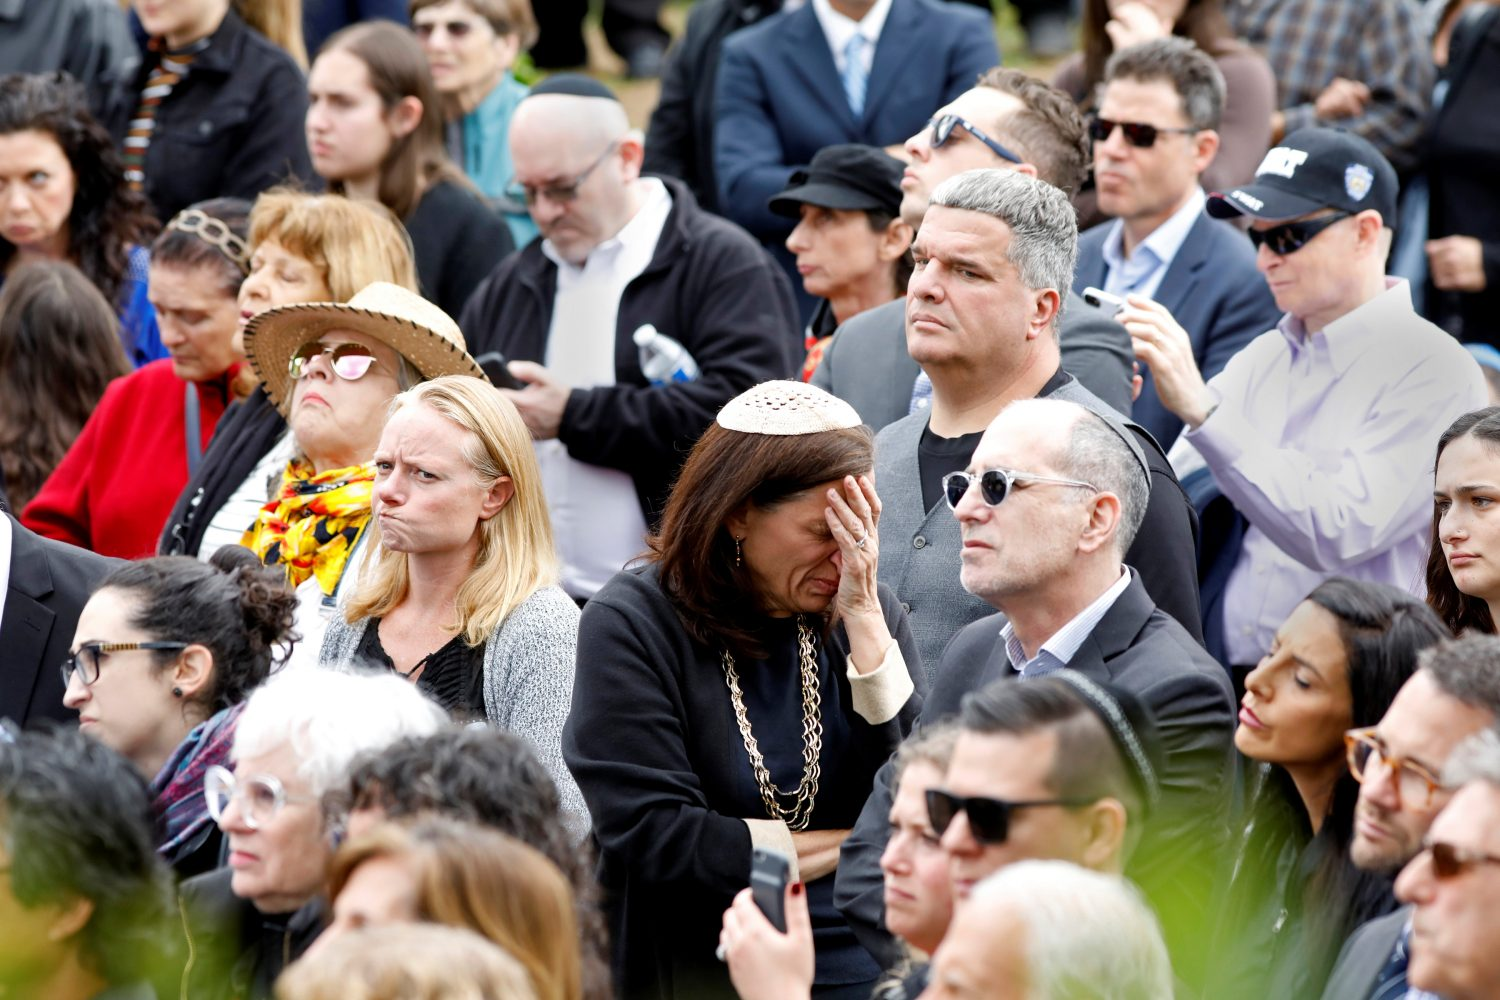 A crowd watches on screen the funeral for Lori Gilbert-Kaye, the sole fatality of the Saturday synagogue shooting at the Congregation Chabad synagogue in Poway, north of San Diego, California, U.S. April 29, 2019. REUTERS/John Gastaldo